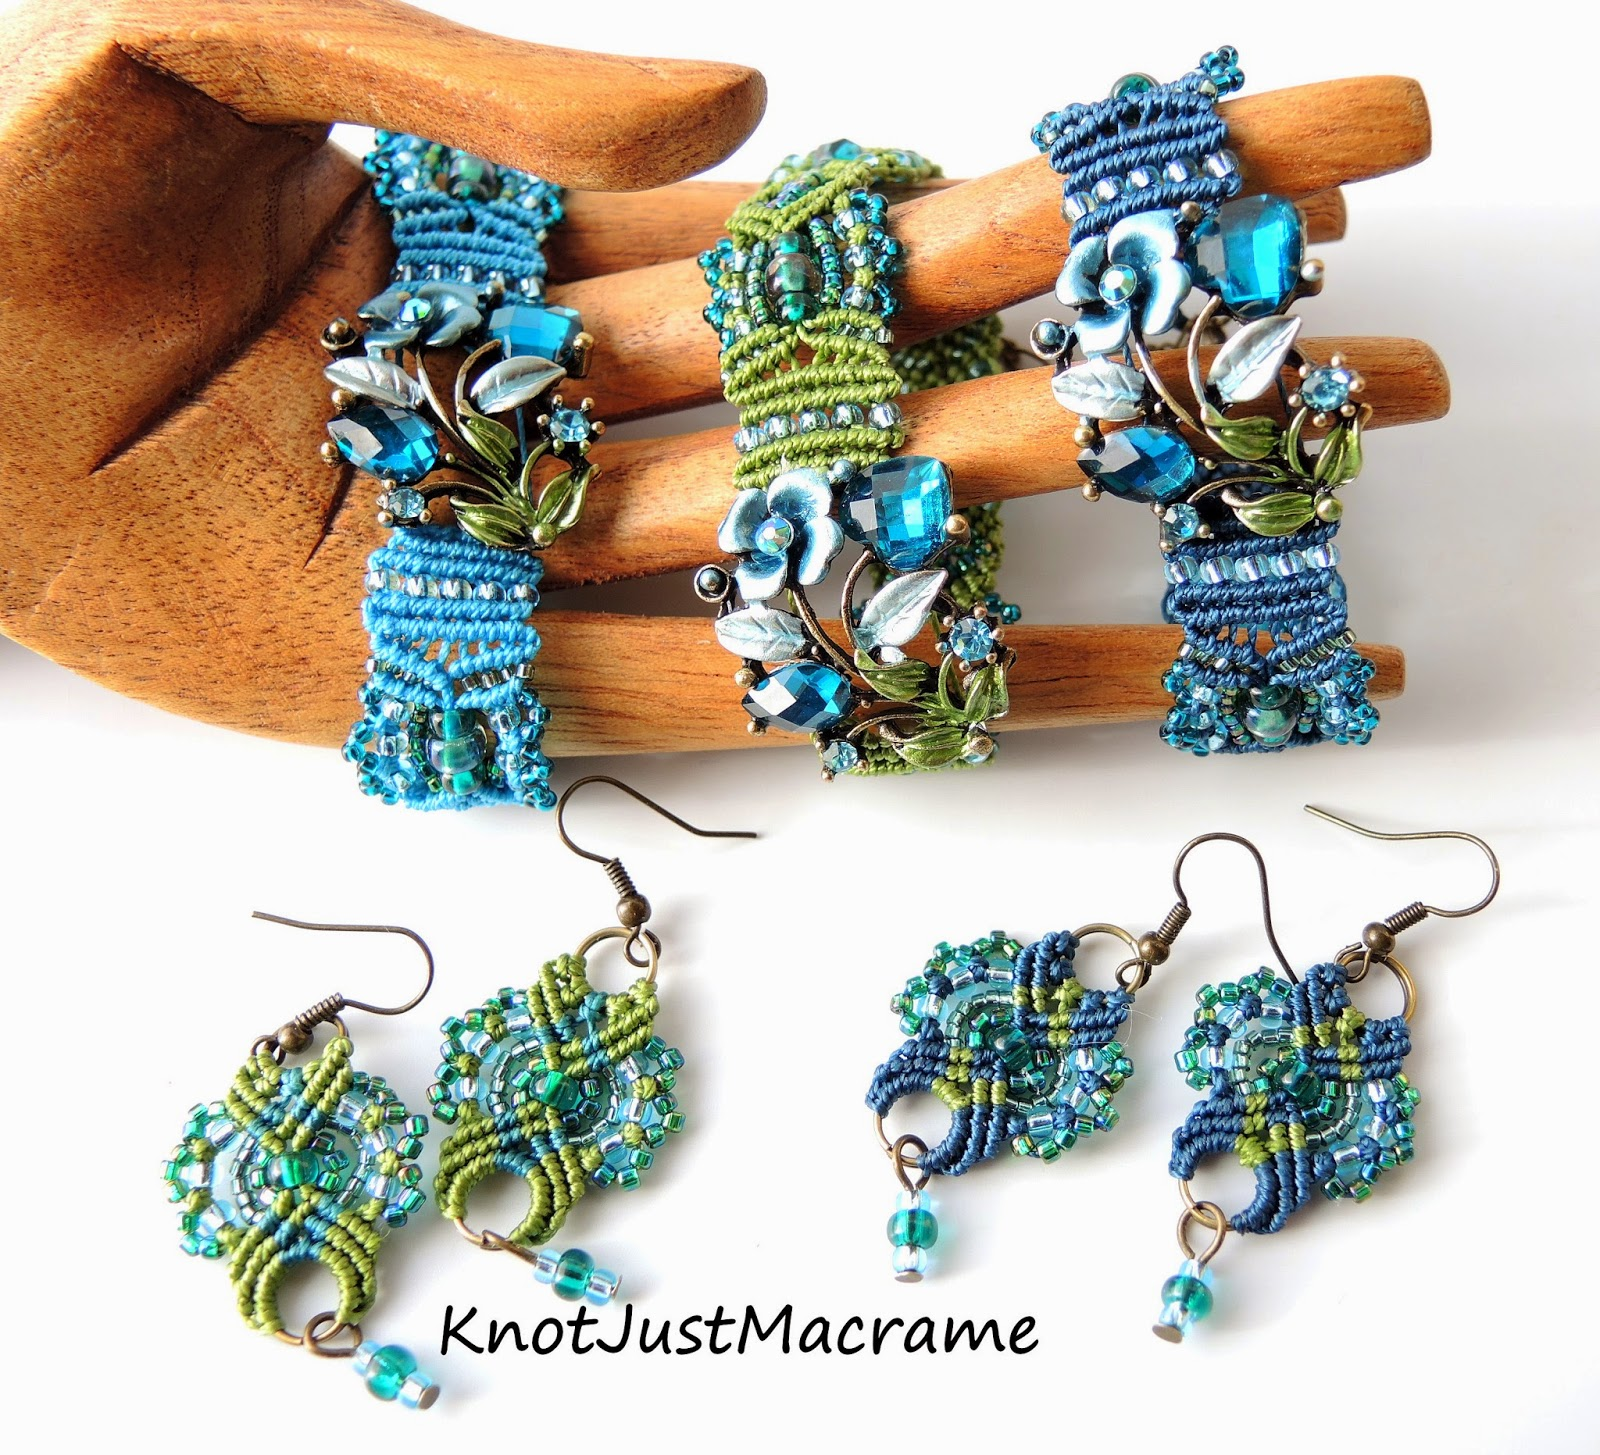 Micro macrame bracelets and earrings by Sherri Stokey of Knot Just Macrame.